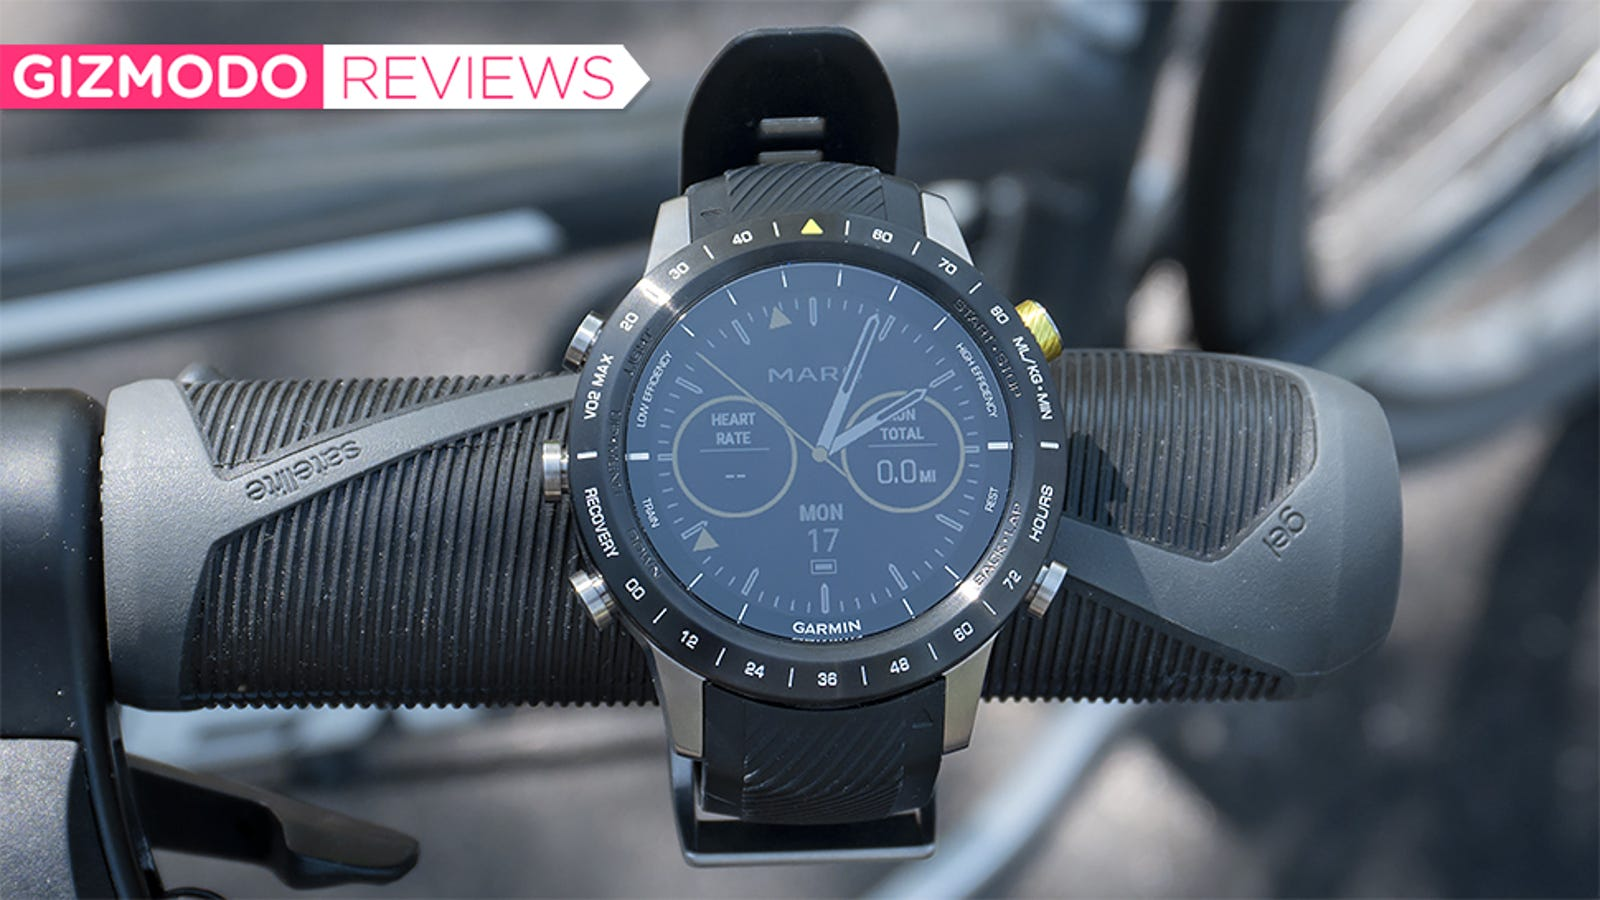 QnA VBage Am I Wrong For Wanting a Better Screen on a $1,500 Smartwatch?